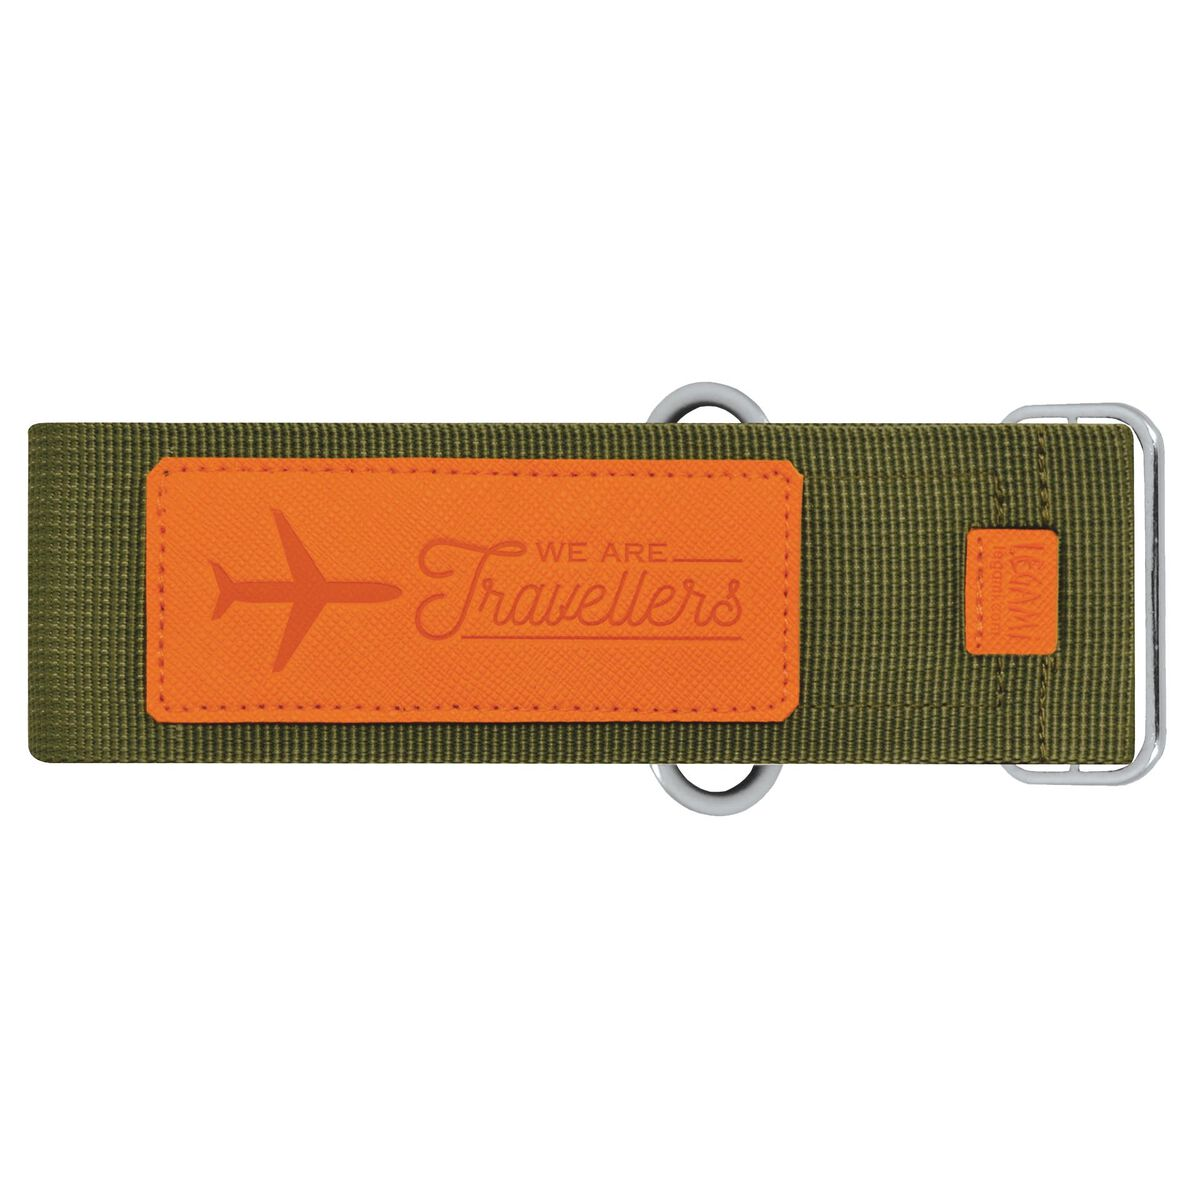 Luggage Strap, , zoom